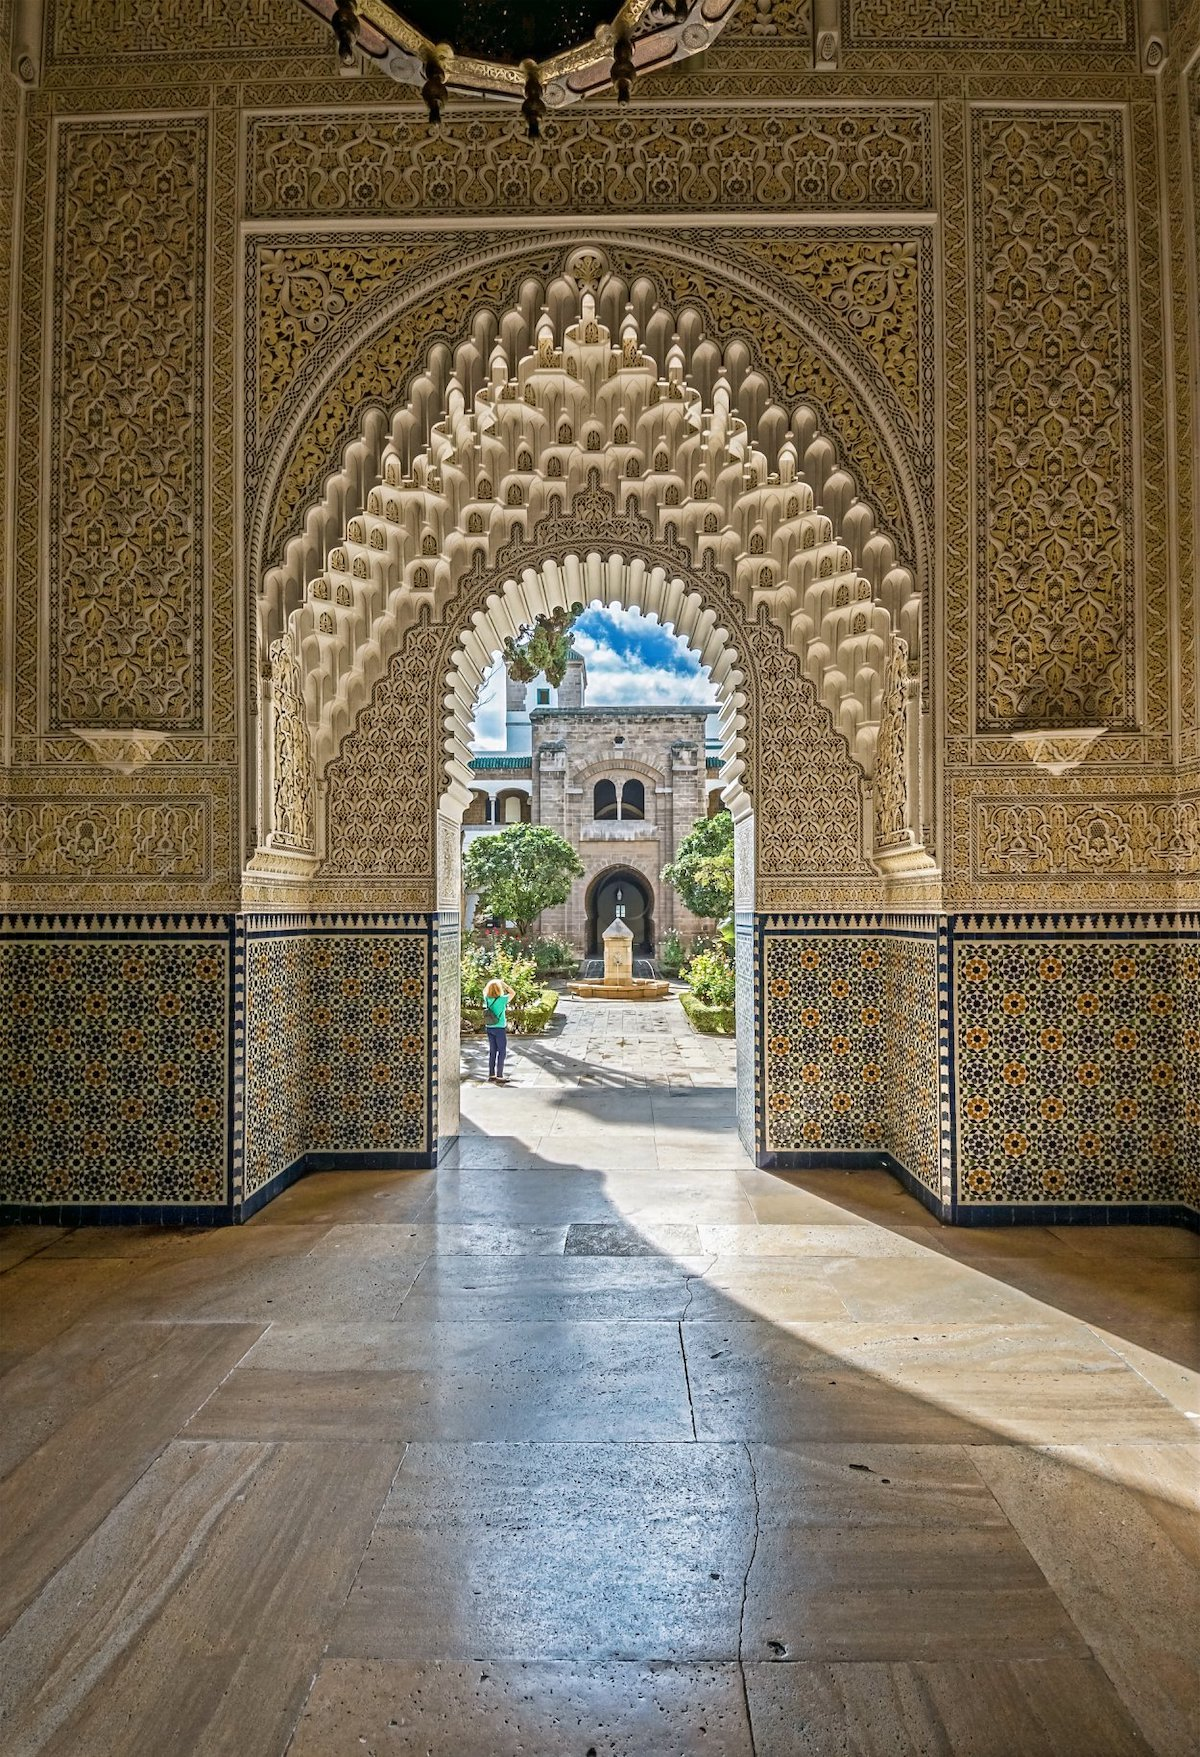 Casablanca Bucket List: 15 Best Things to Do in Casablanca, Morocco